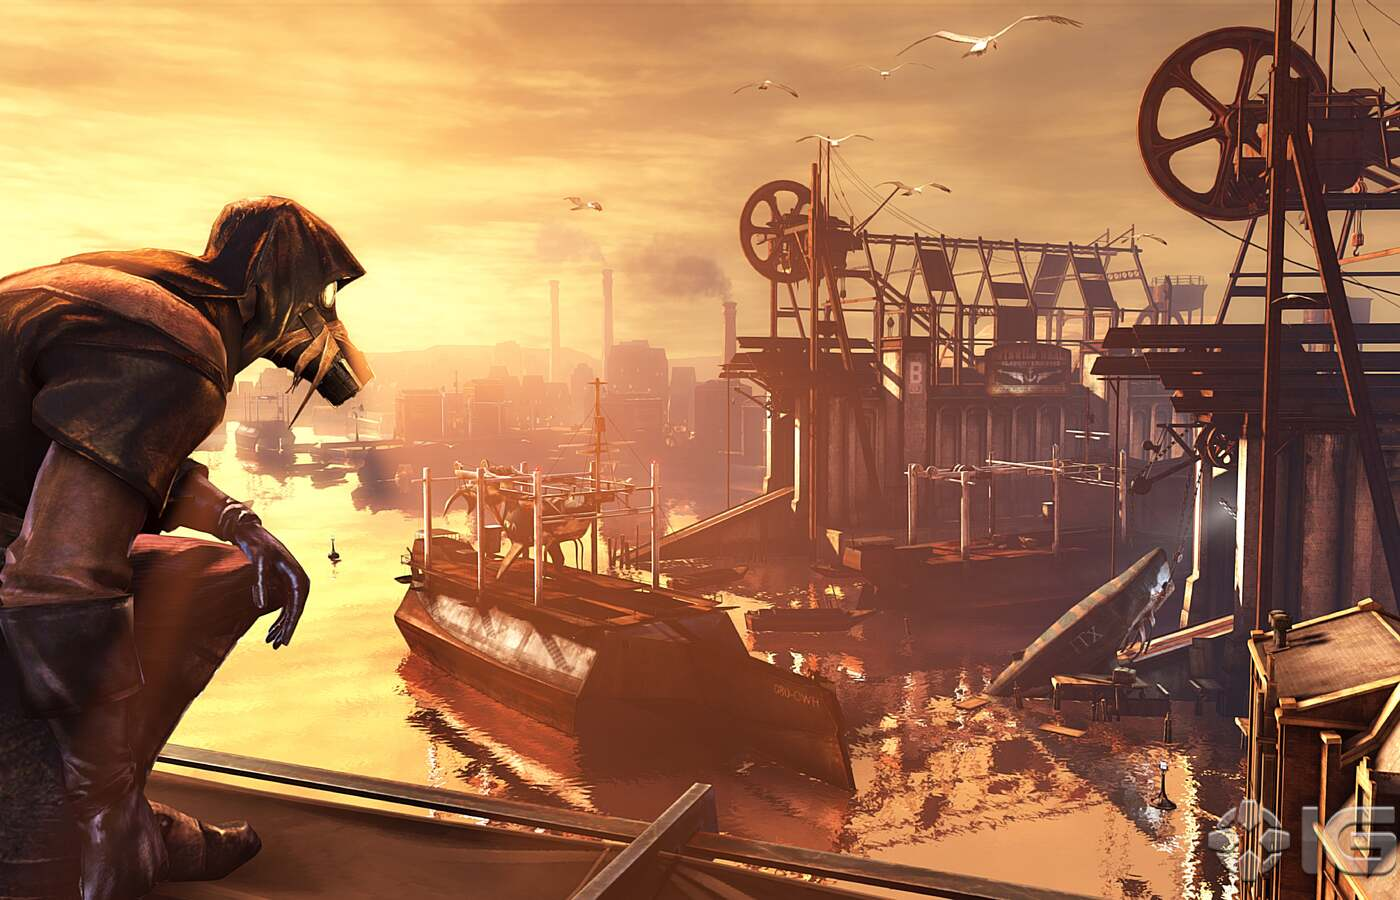 1400x900 Dishonored The Knife Of Dunwall 1400x900 ...